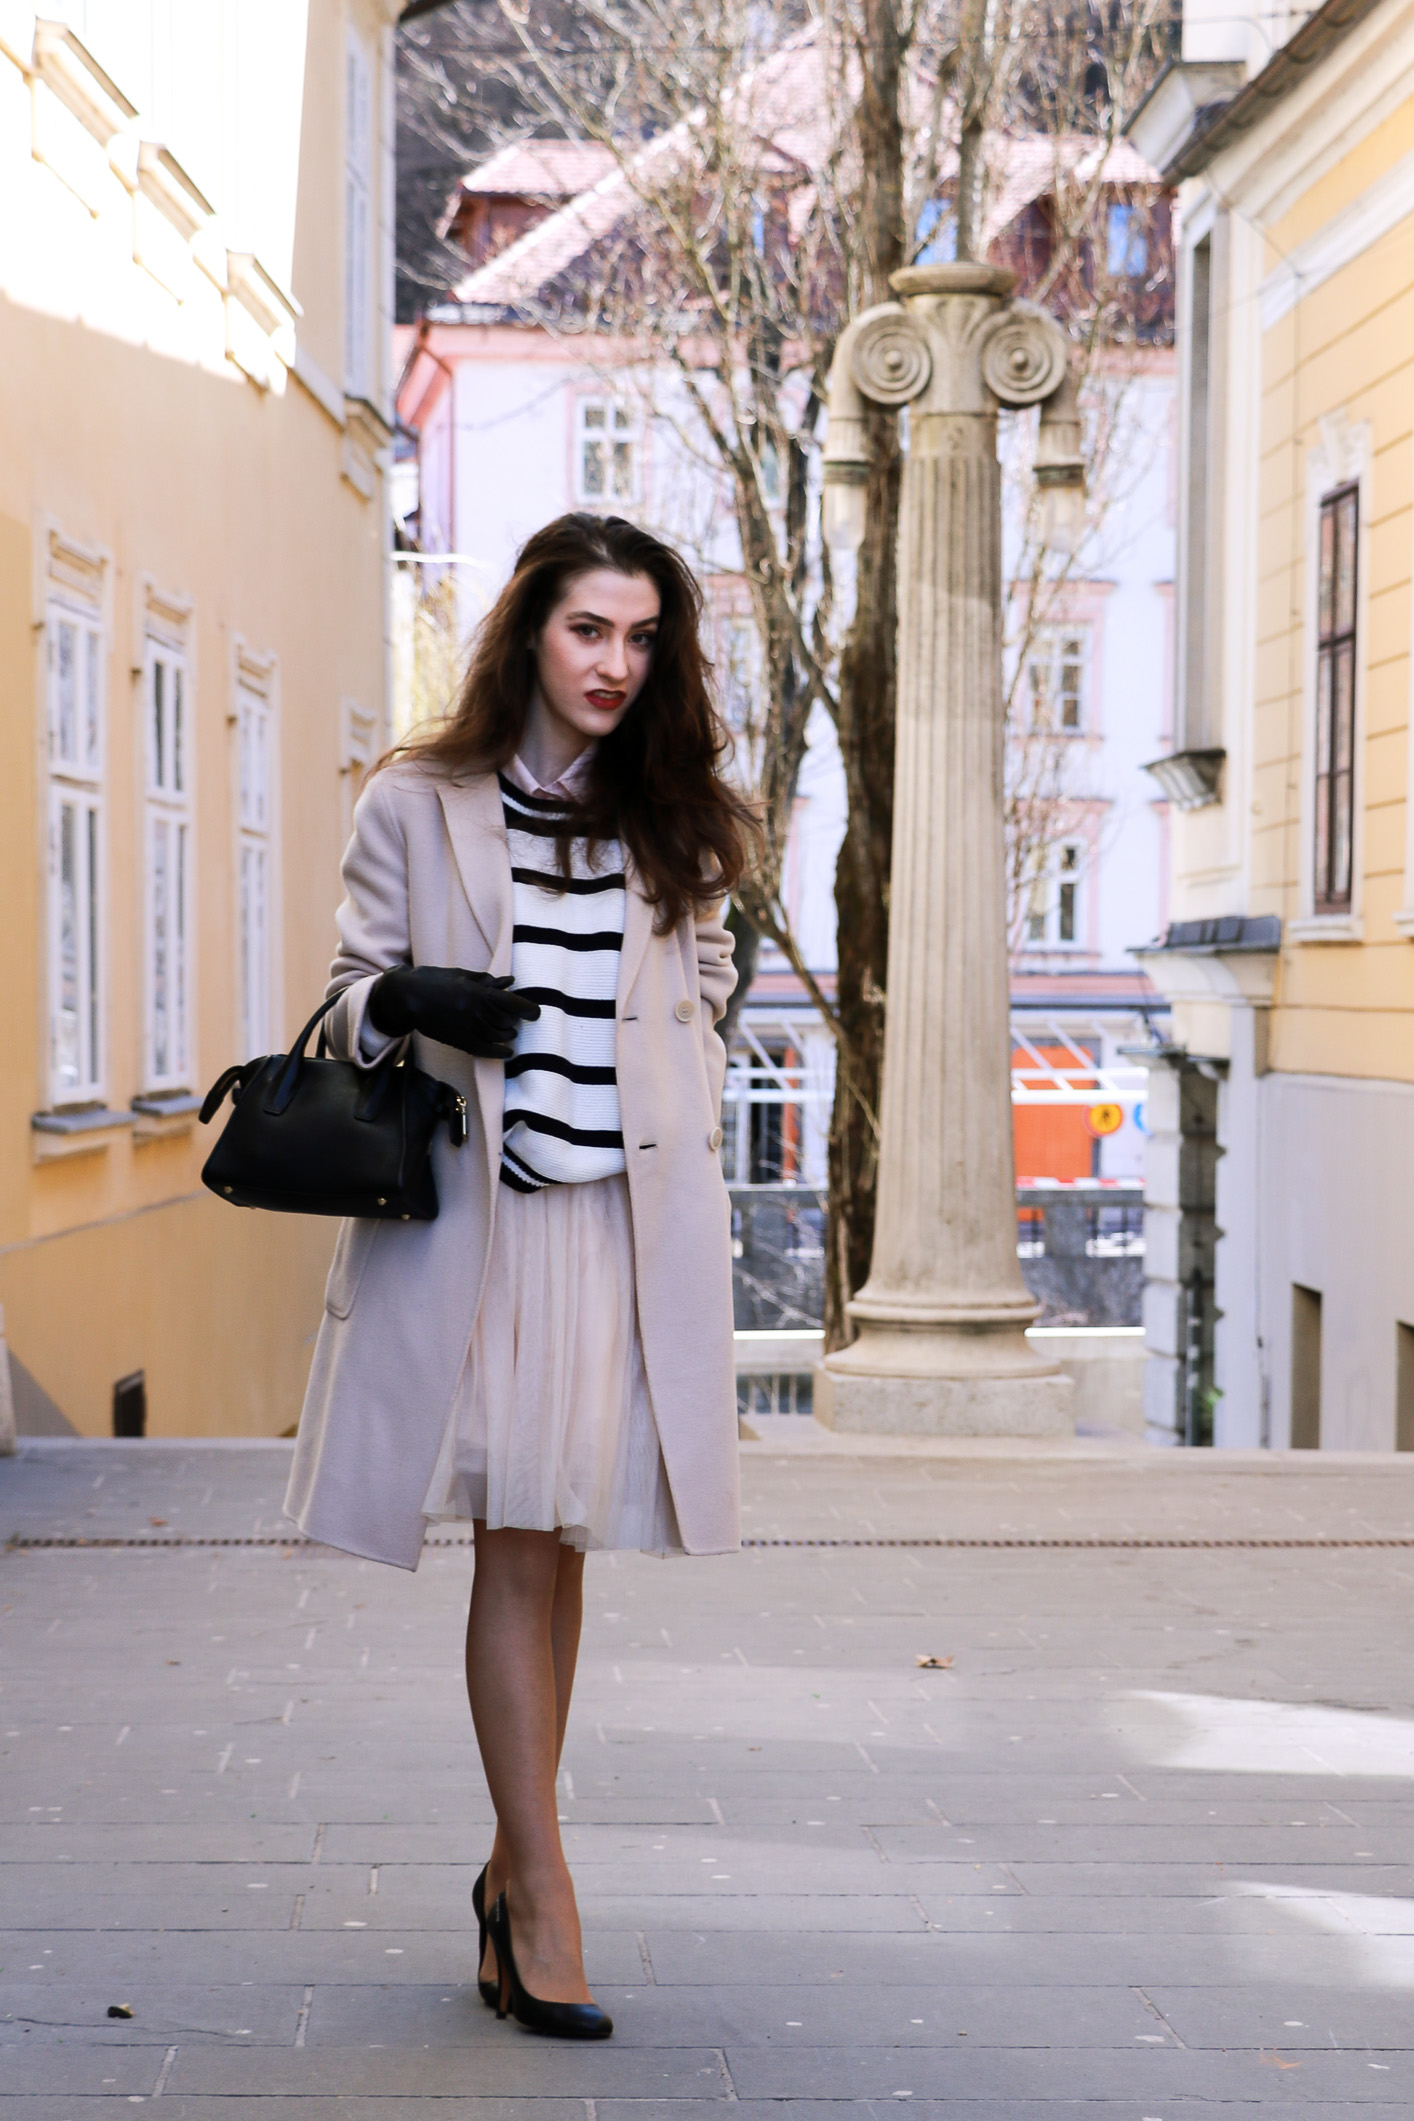 Fashion blogger Veronika Lipar of Brunette From Wall Street sharing her princess spring look